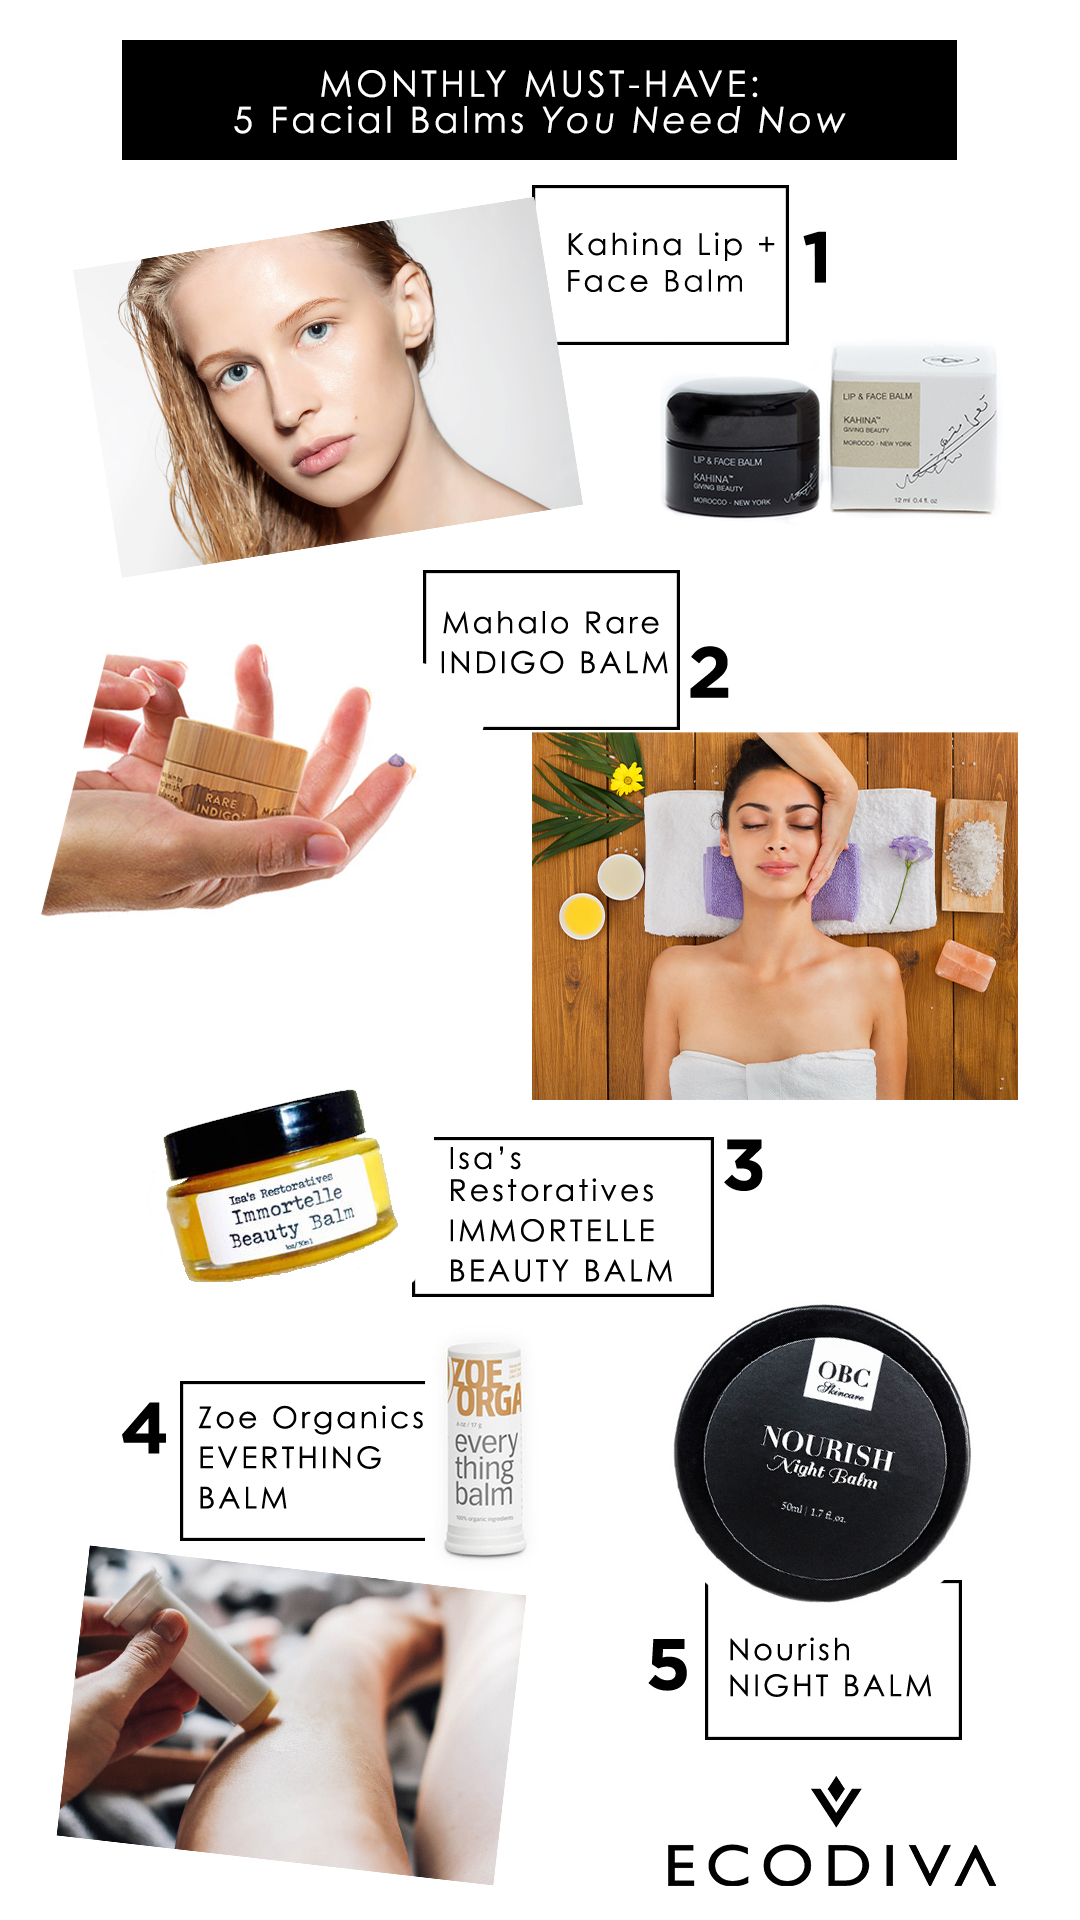 5facialbalms